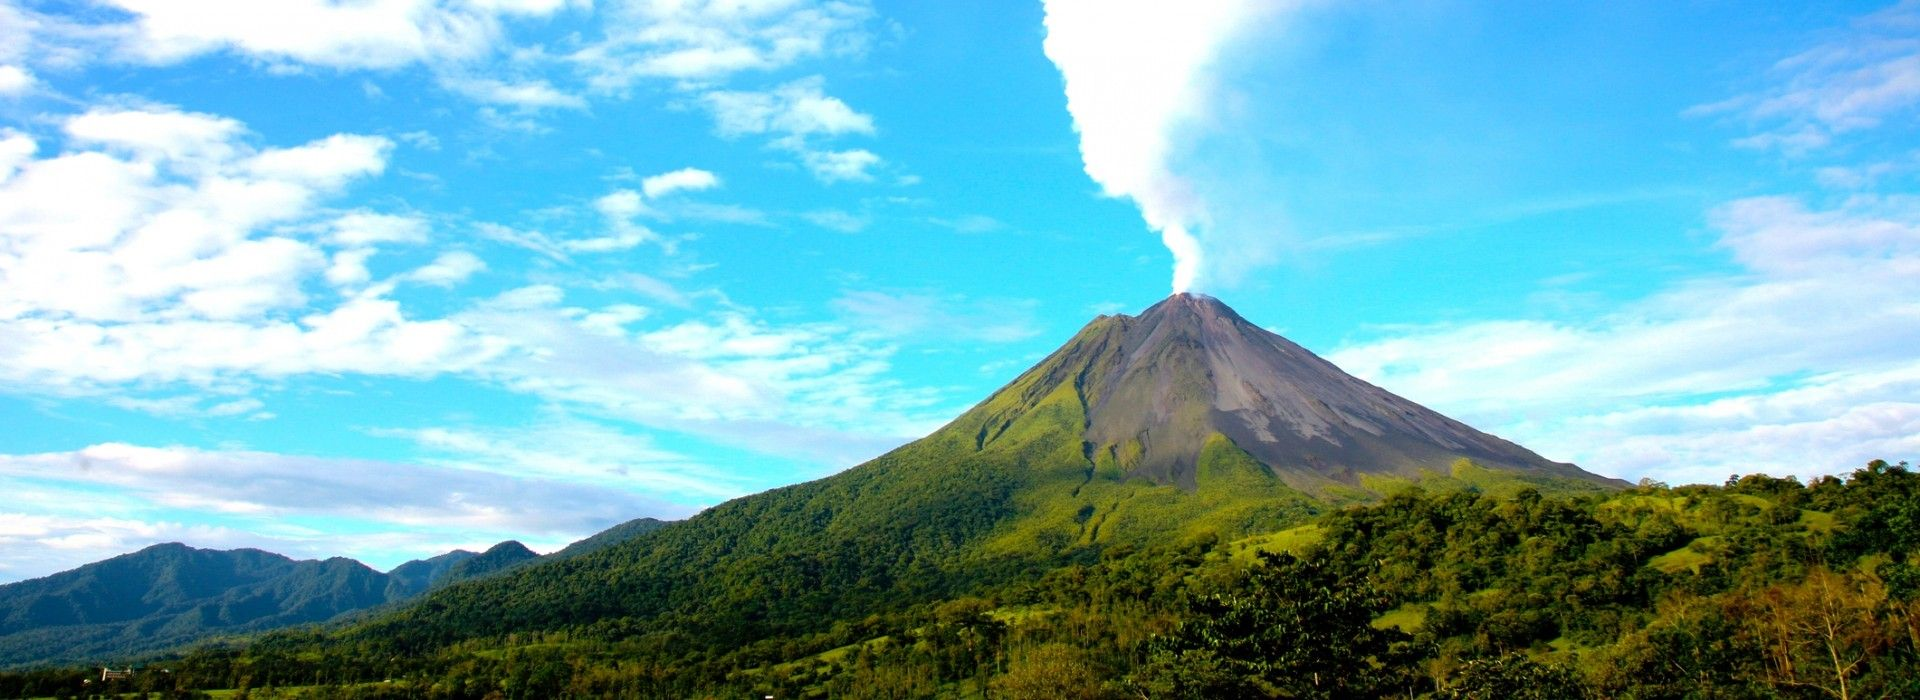 Cultural, religious and historic sites Tours in La Fortuna